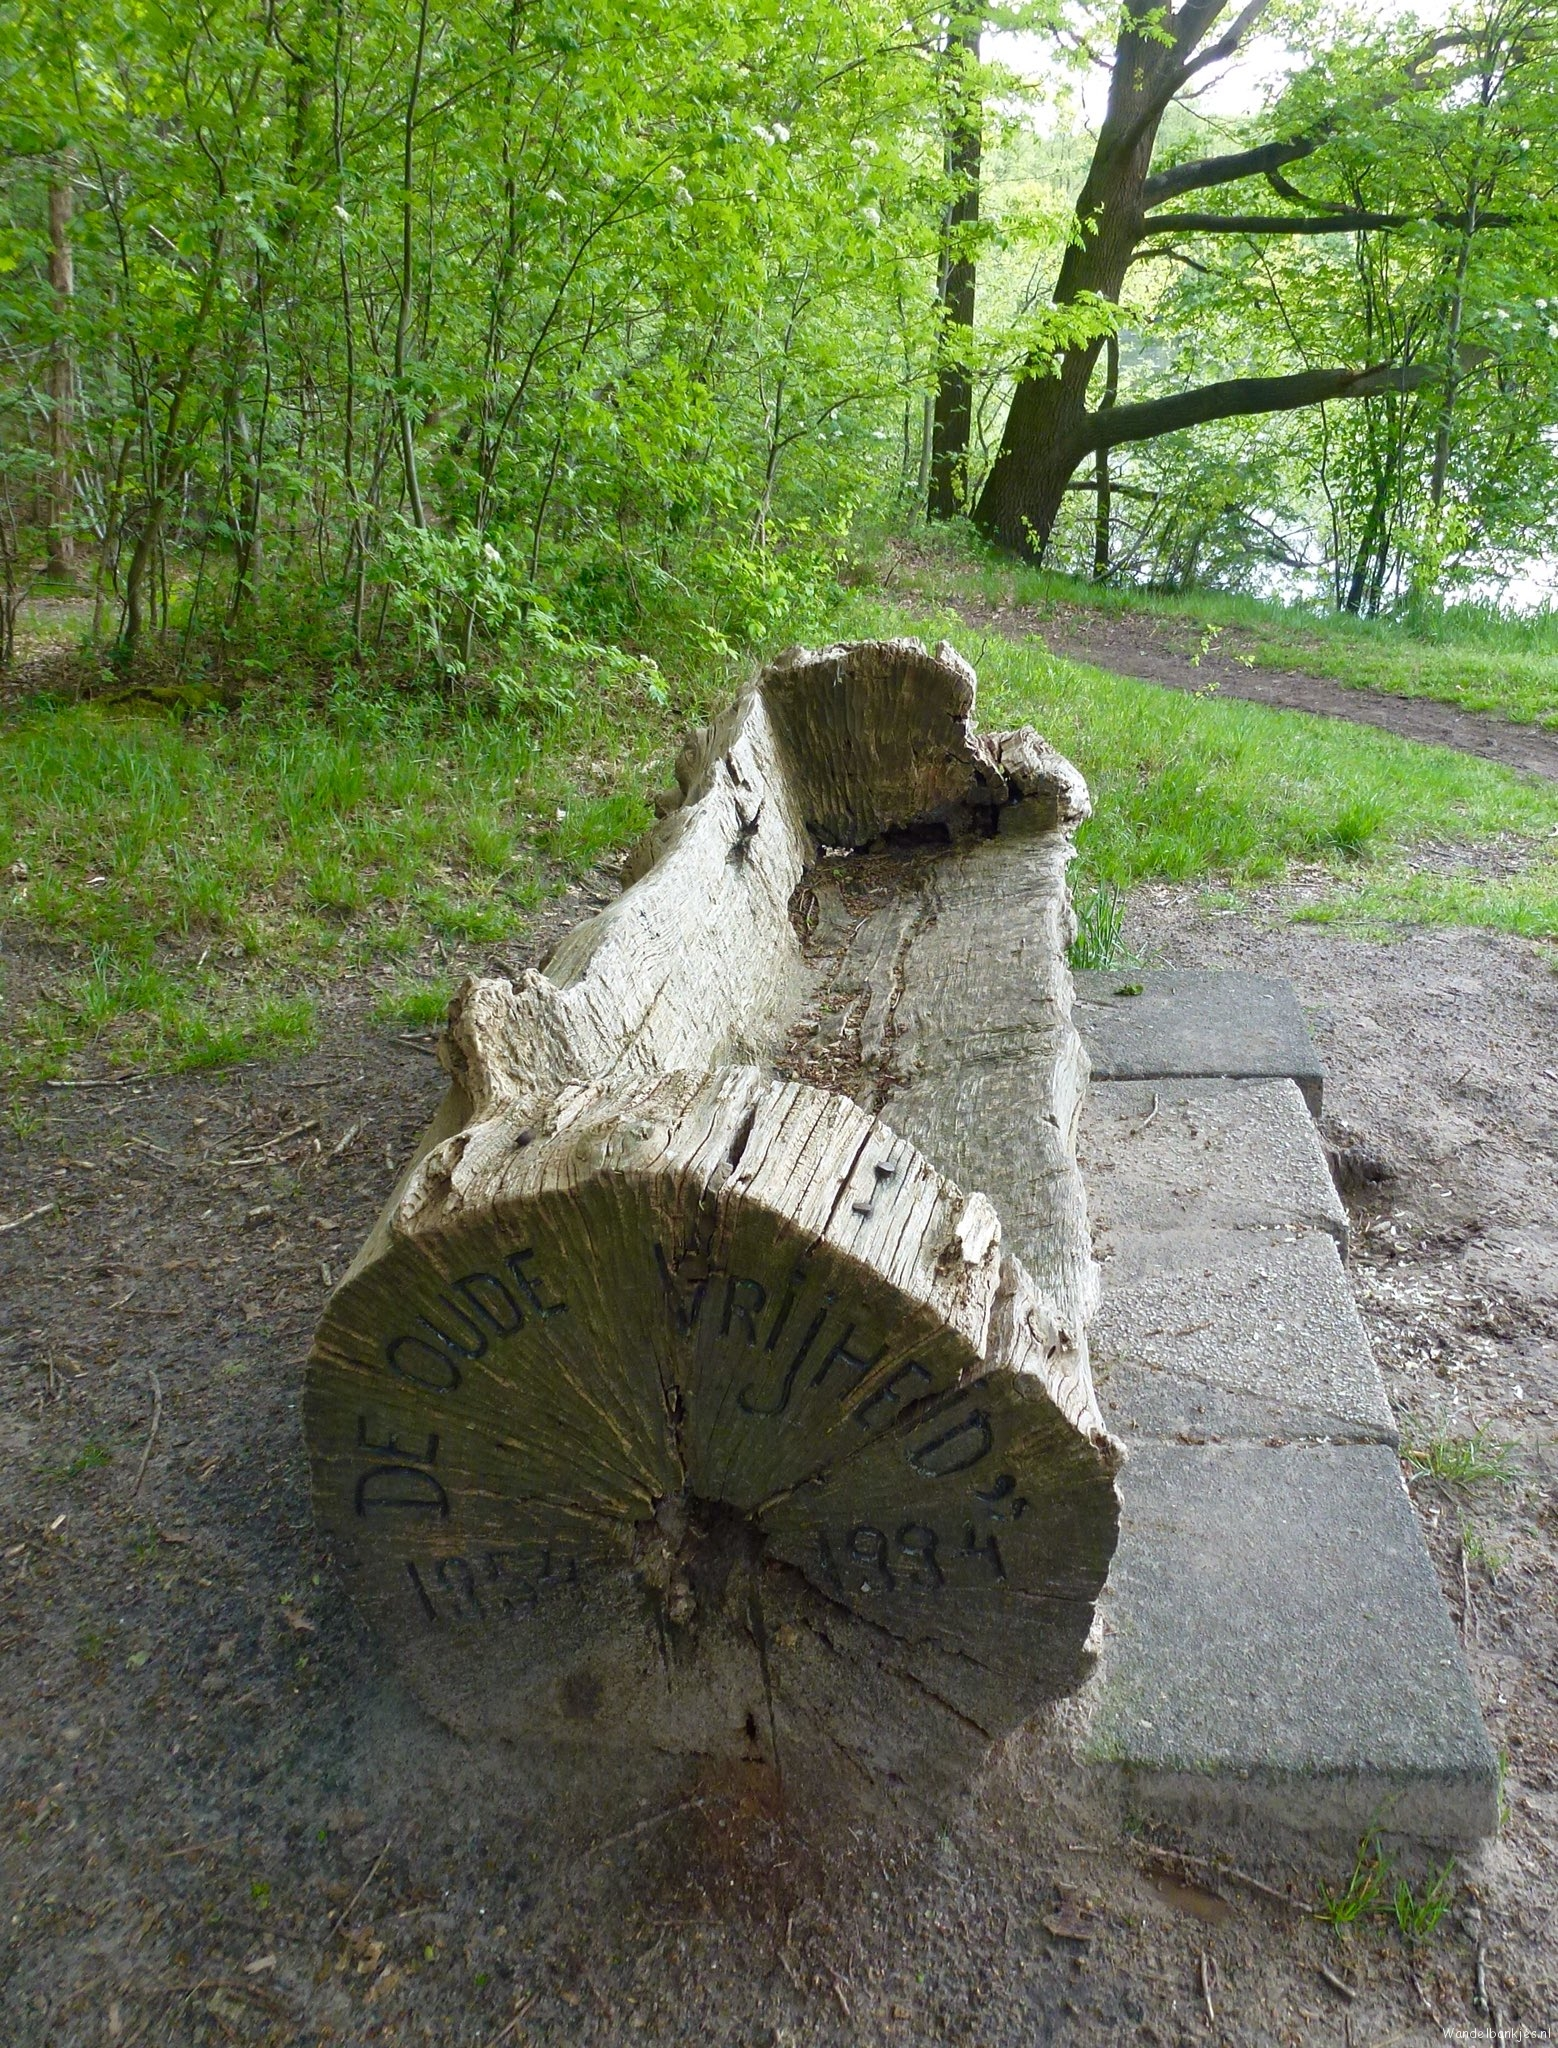 rt-adriana57-beautiful-made-couch-seen-in-the-woods-at-ninsel-sintoedenrode-voetjes-https-t-co-sro5kit1kk